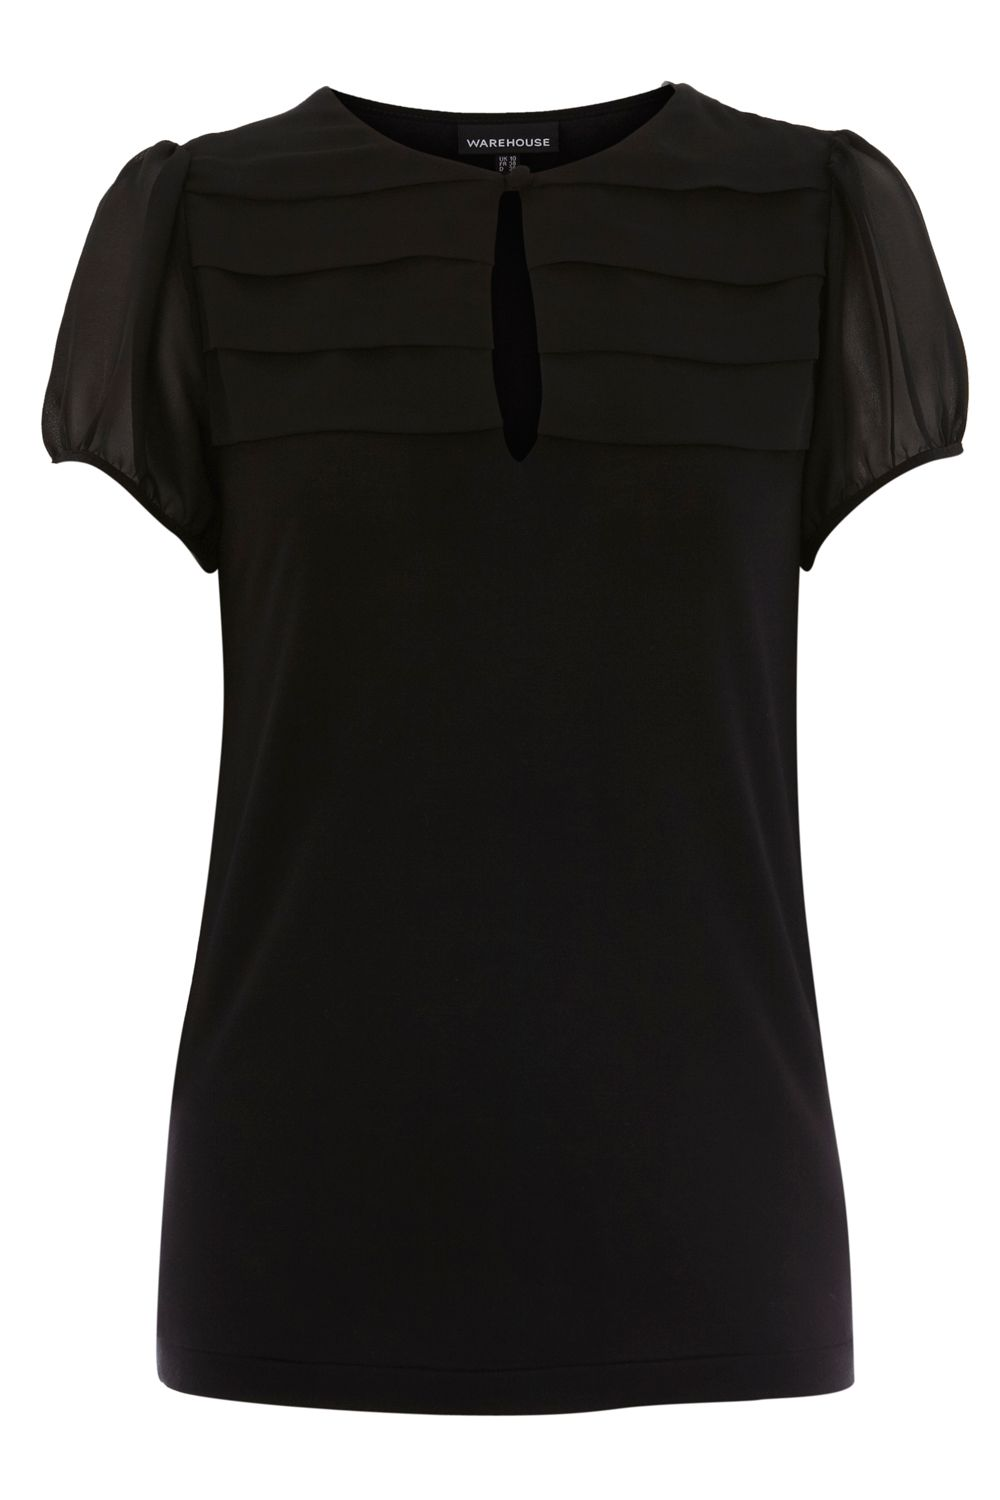 Warehouse Womens Warehouse Pleat yoke blouse, Black product image